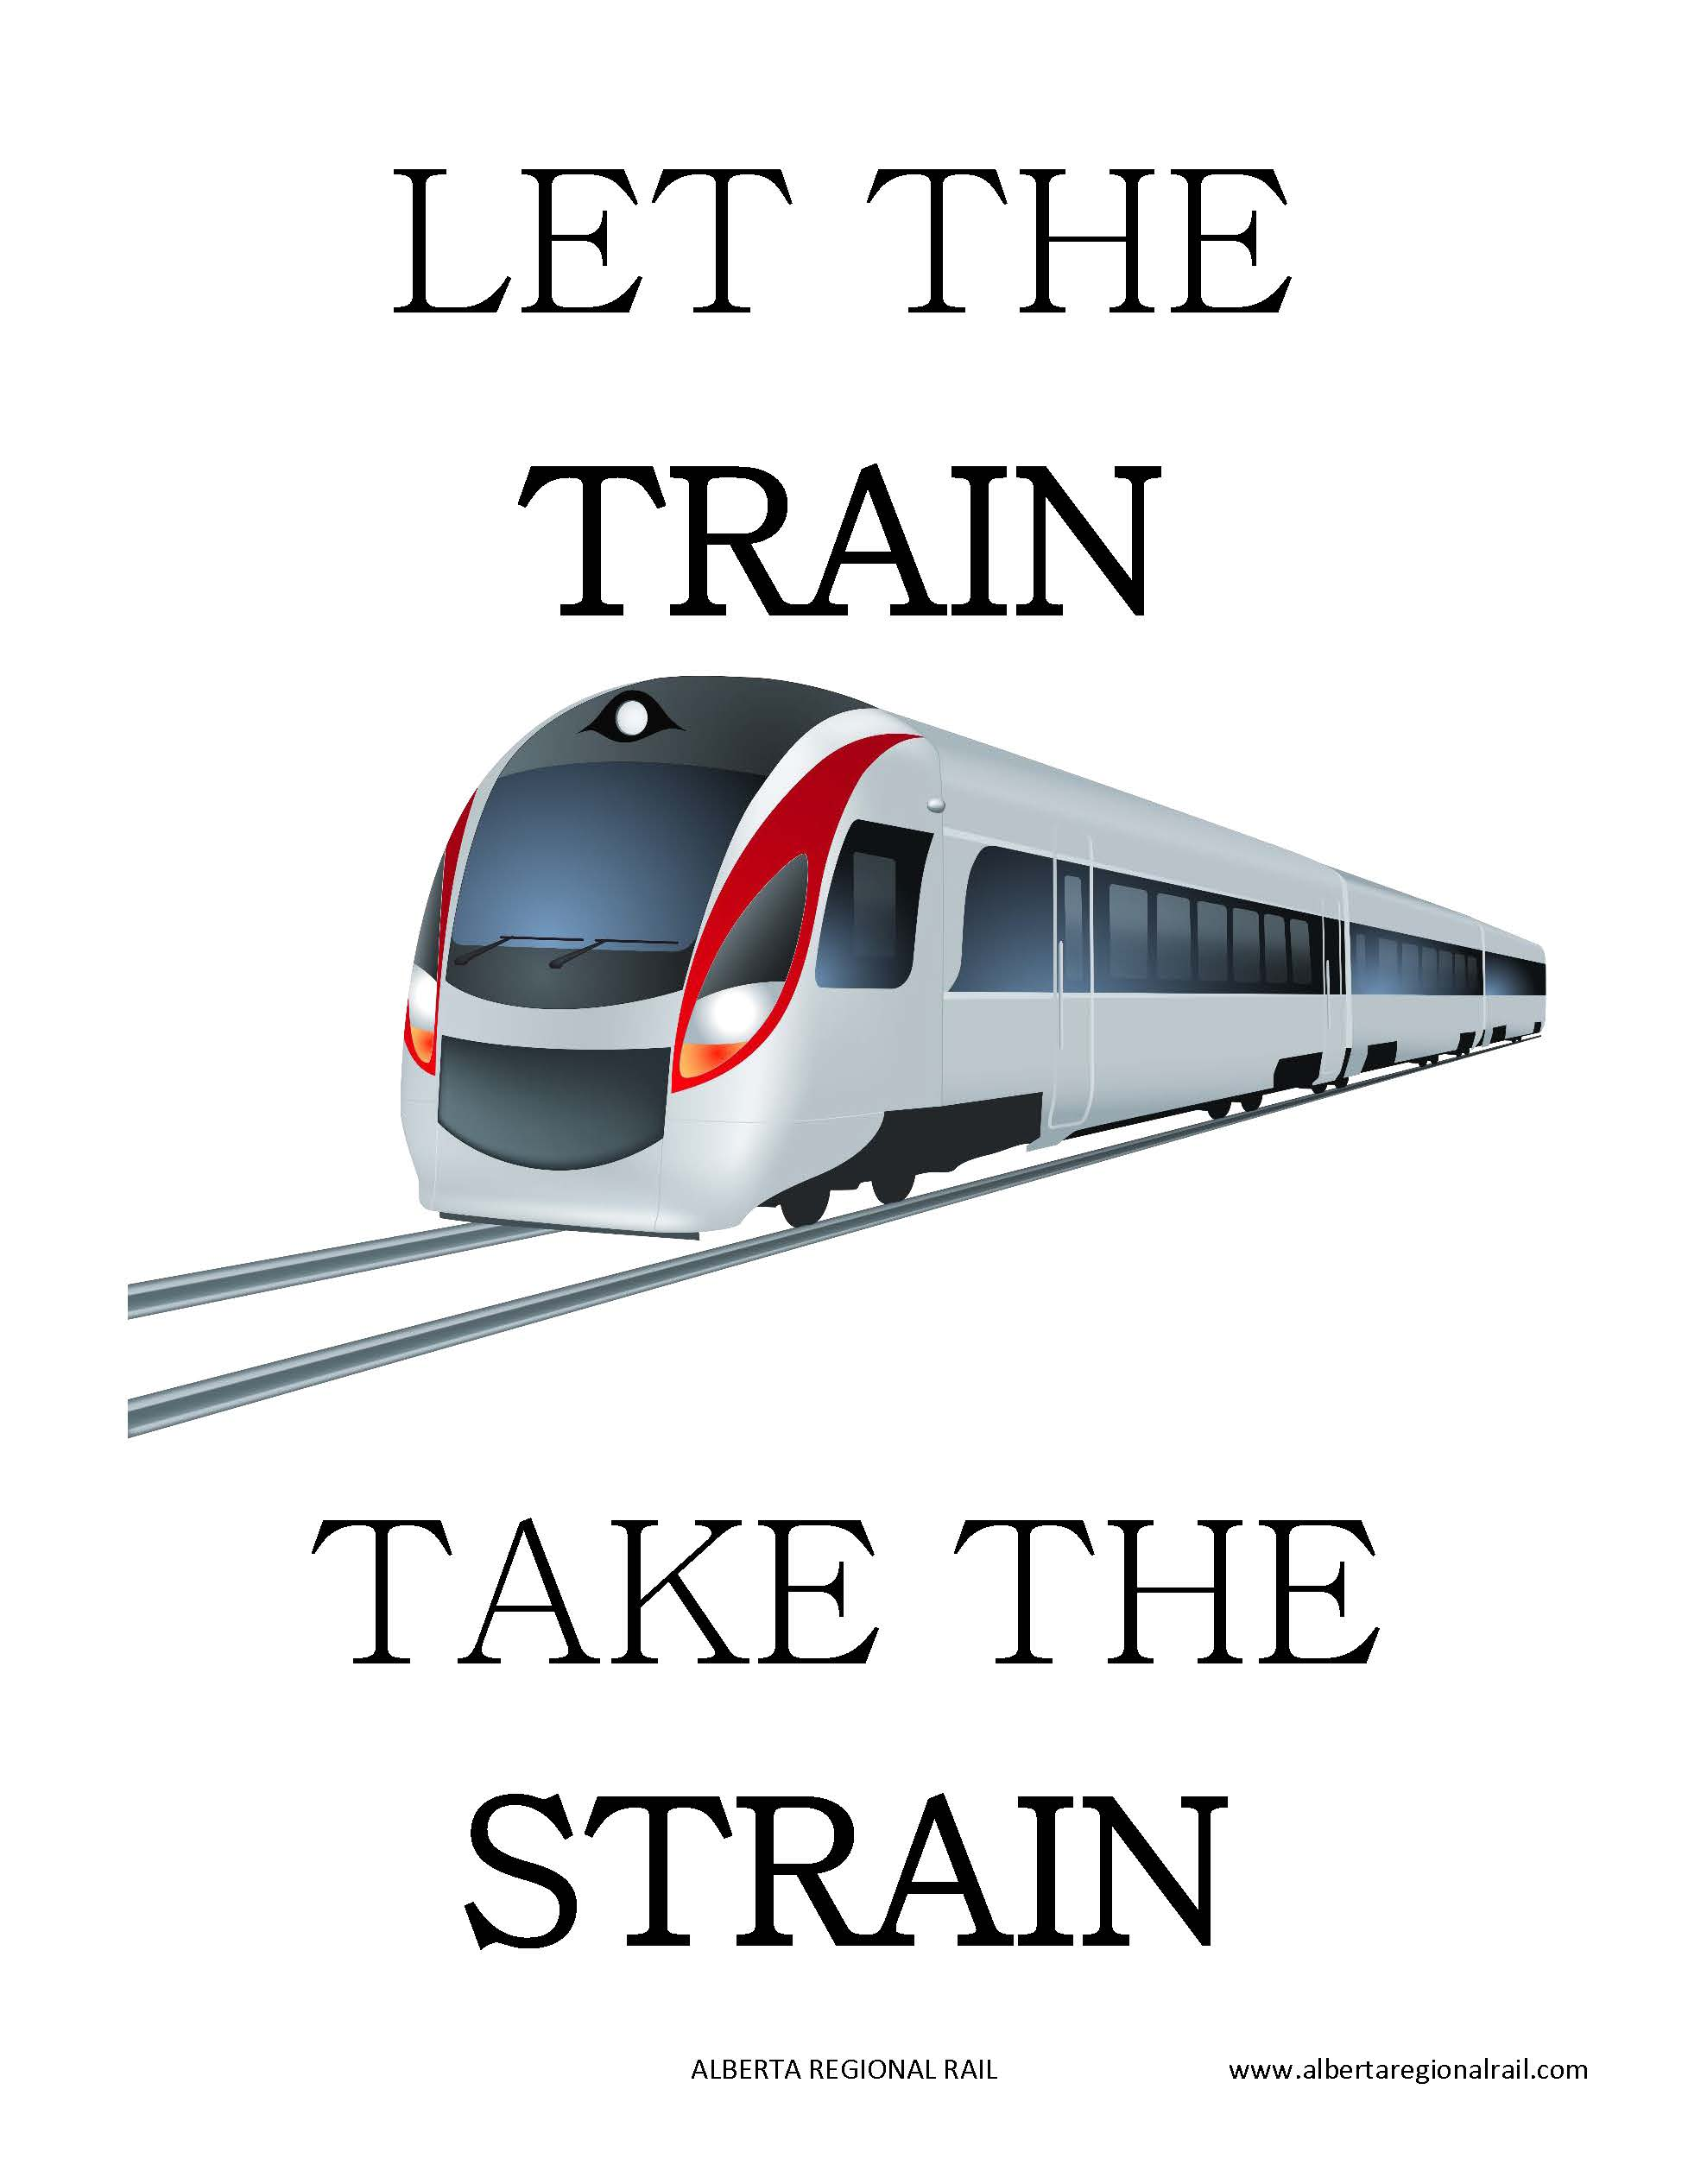 Let the train take the strain